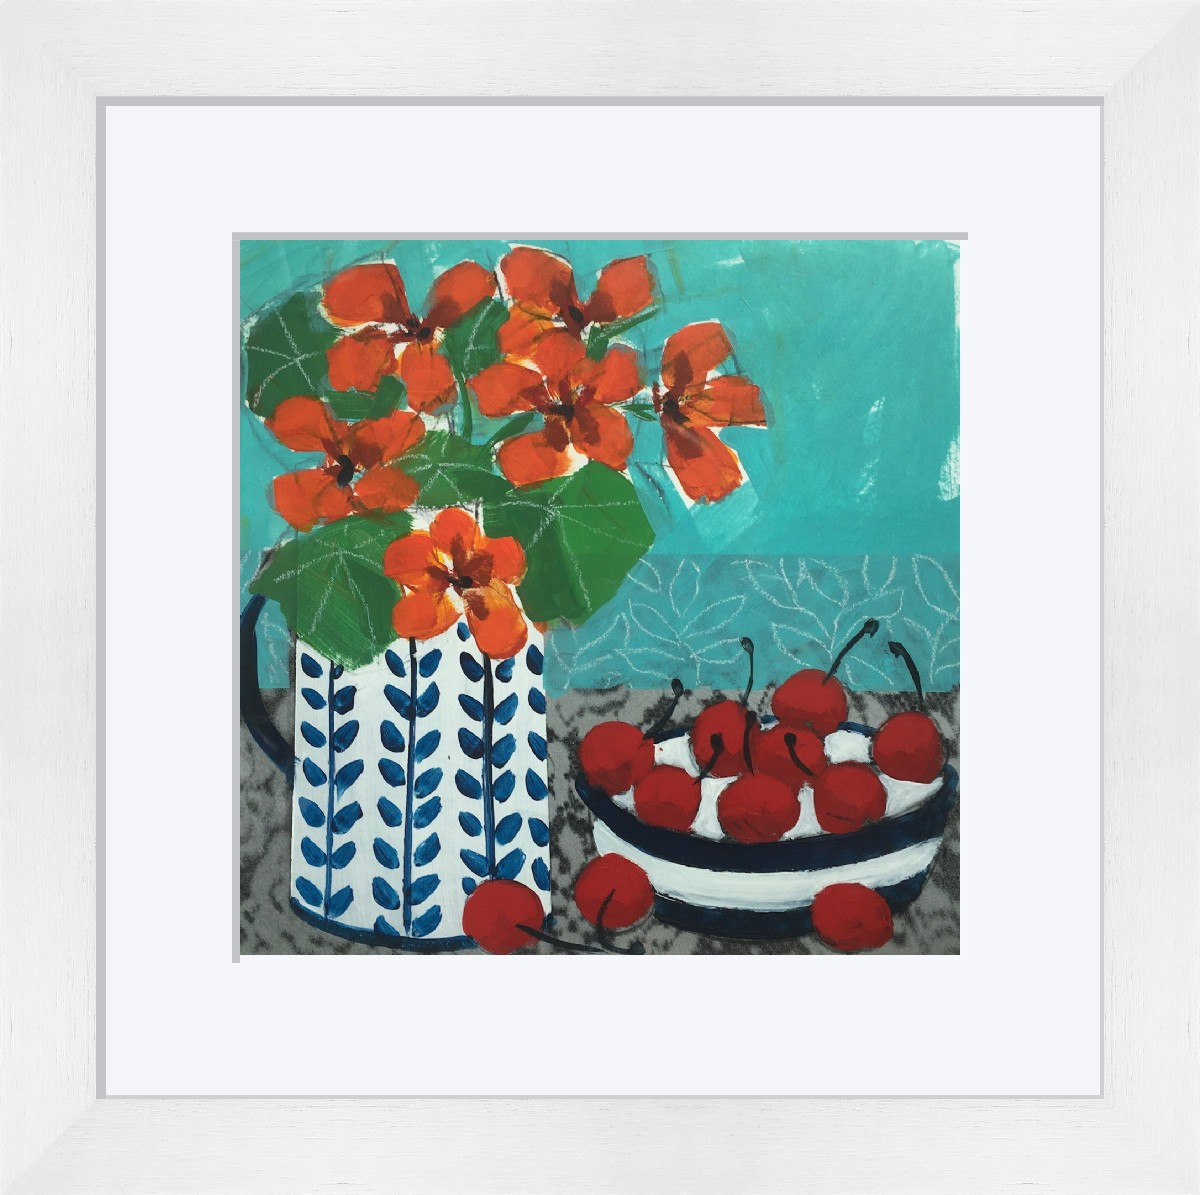 Little Nasturtiums and Cherries  by Relton Marine